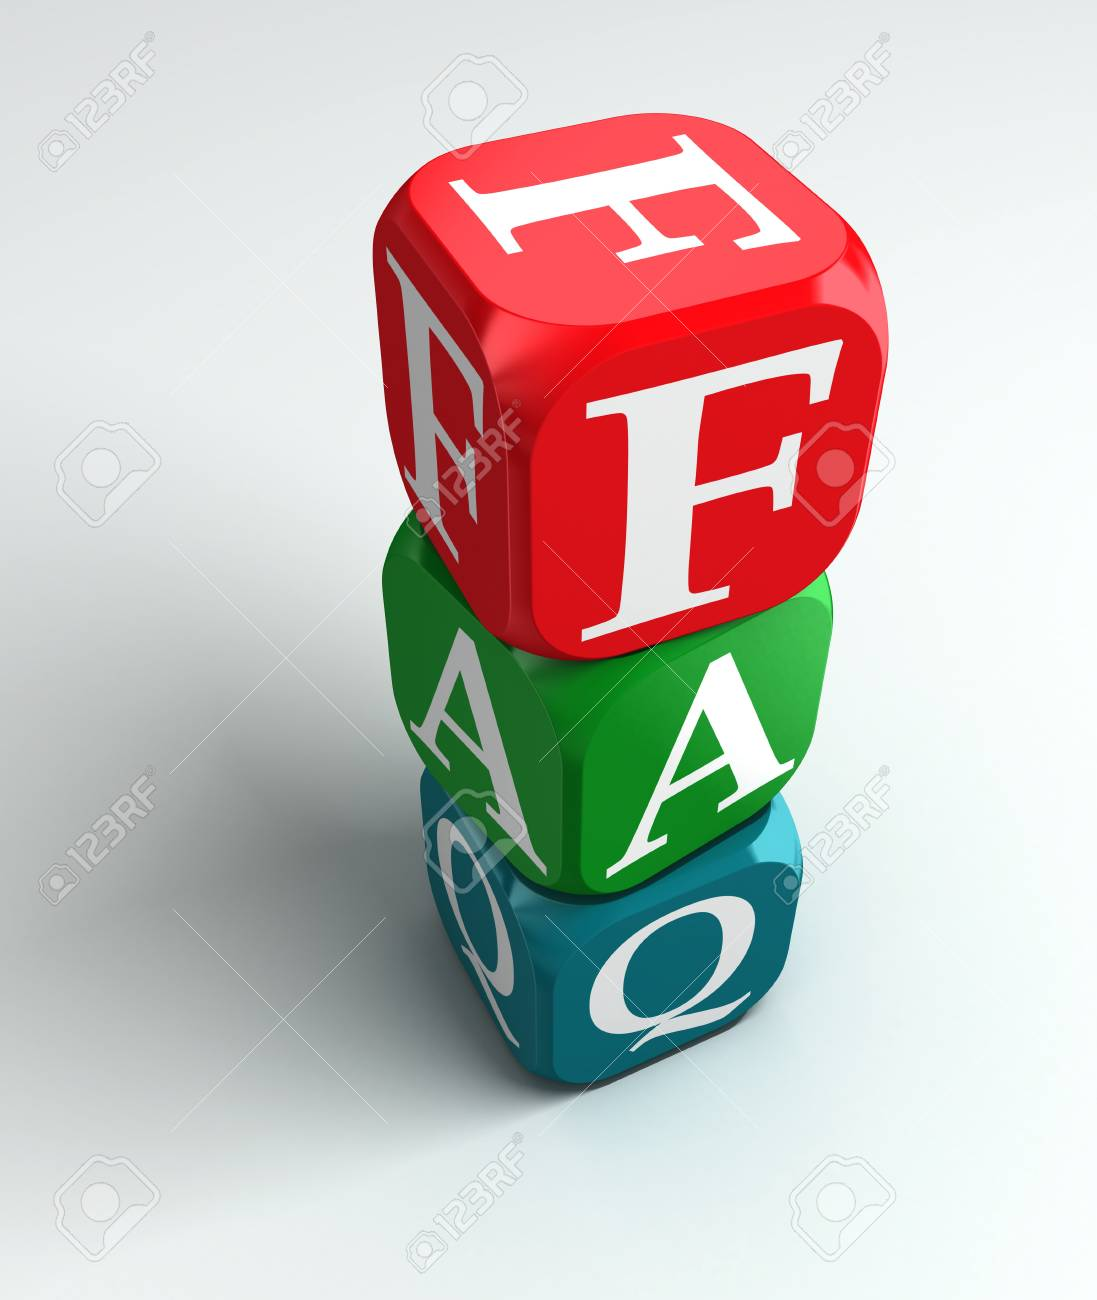 faq 3d colorful buzzword on white background Stock Photo - 11058584